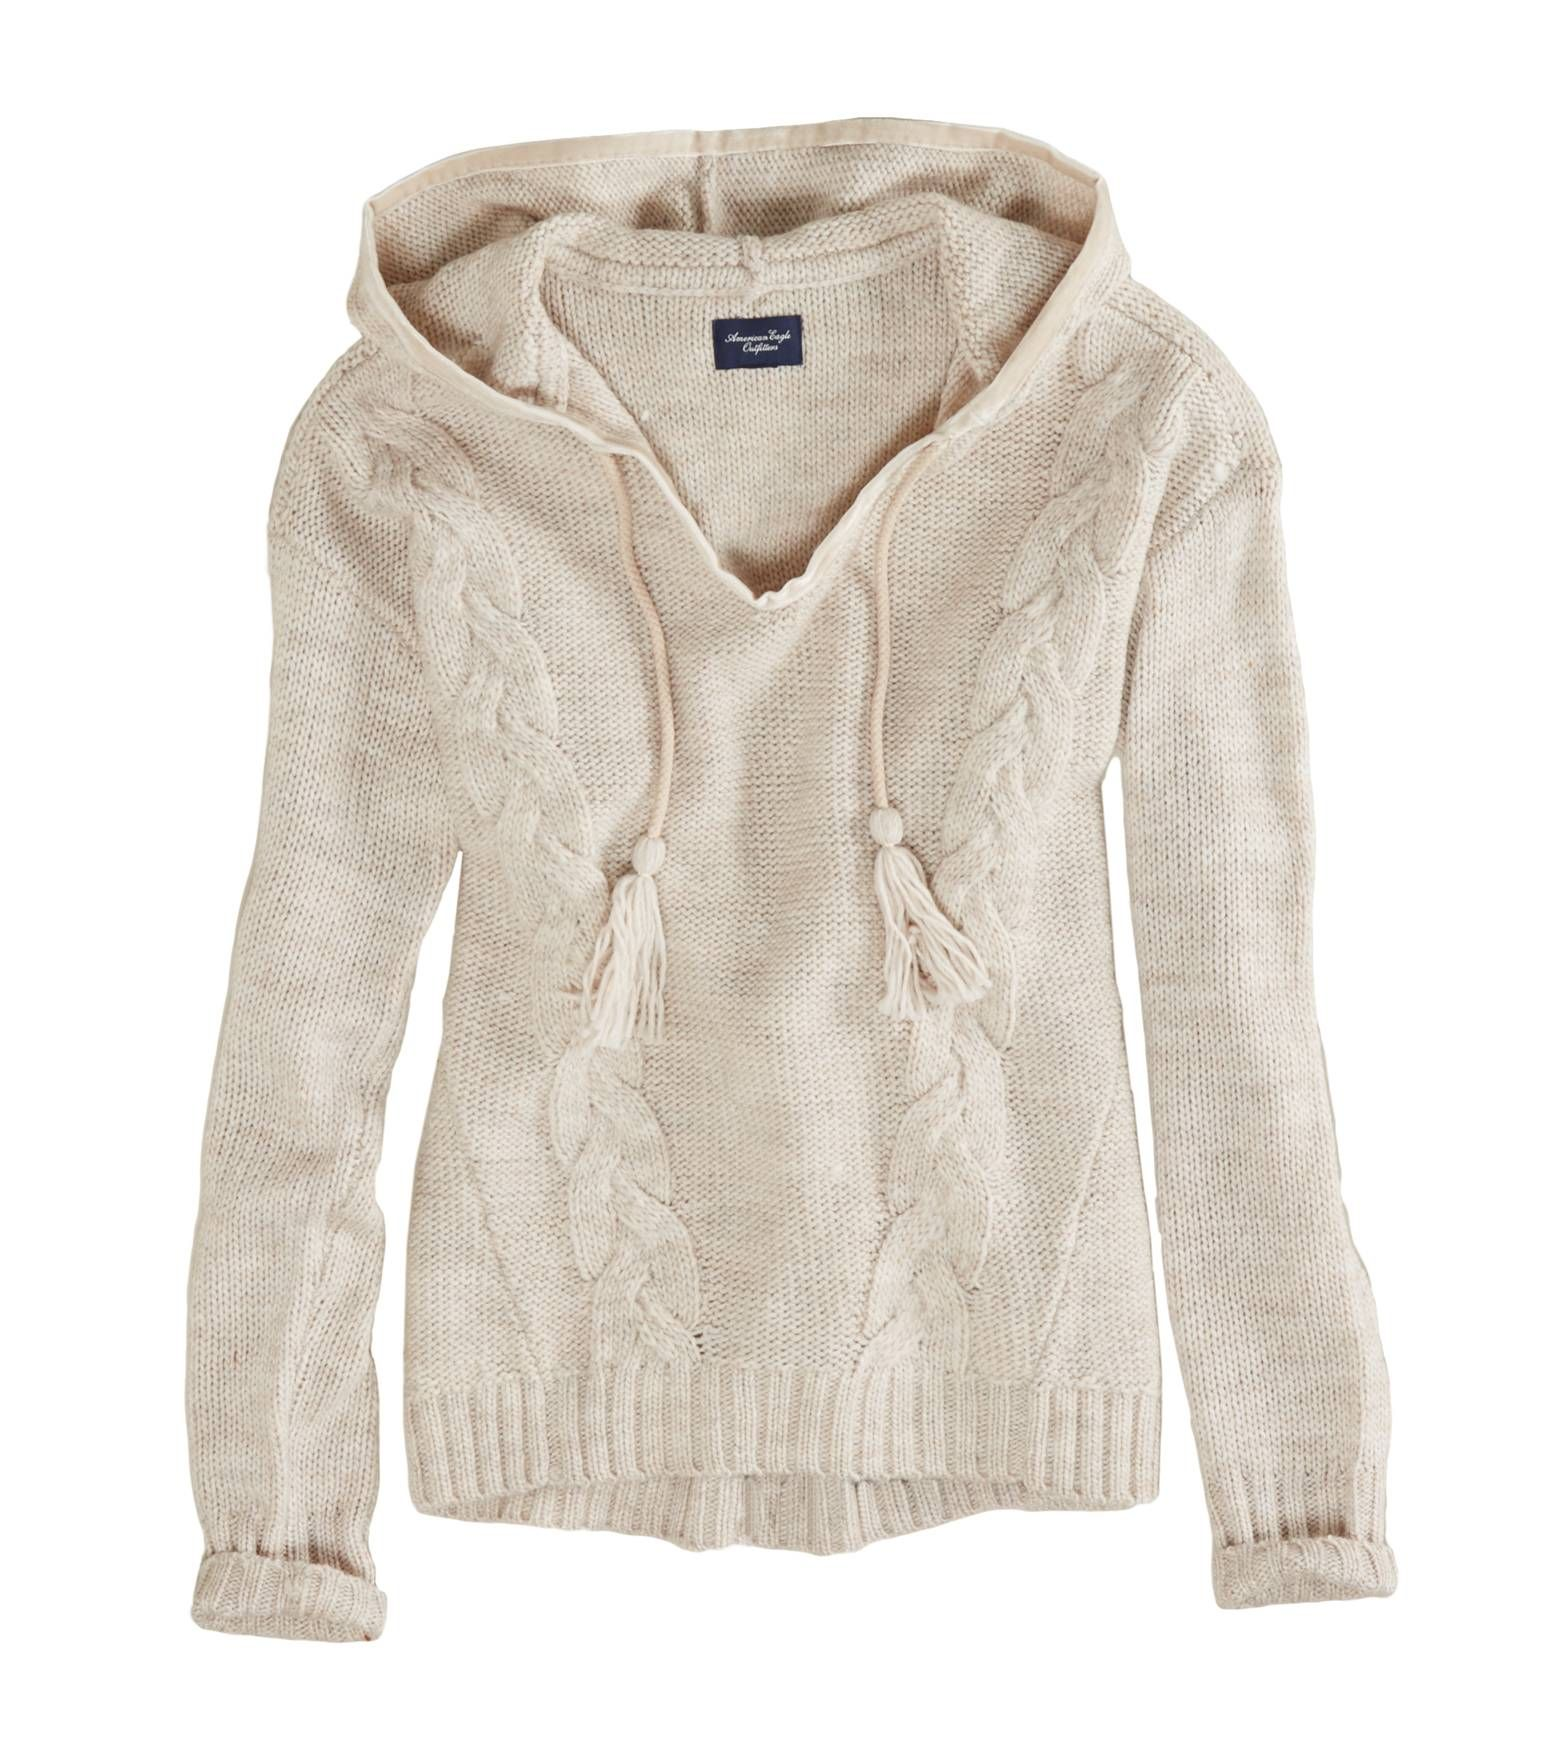 $29.95 AE Cable Knit Sweater hoodie | Fashion | Pinterest ...